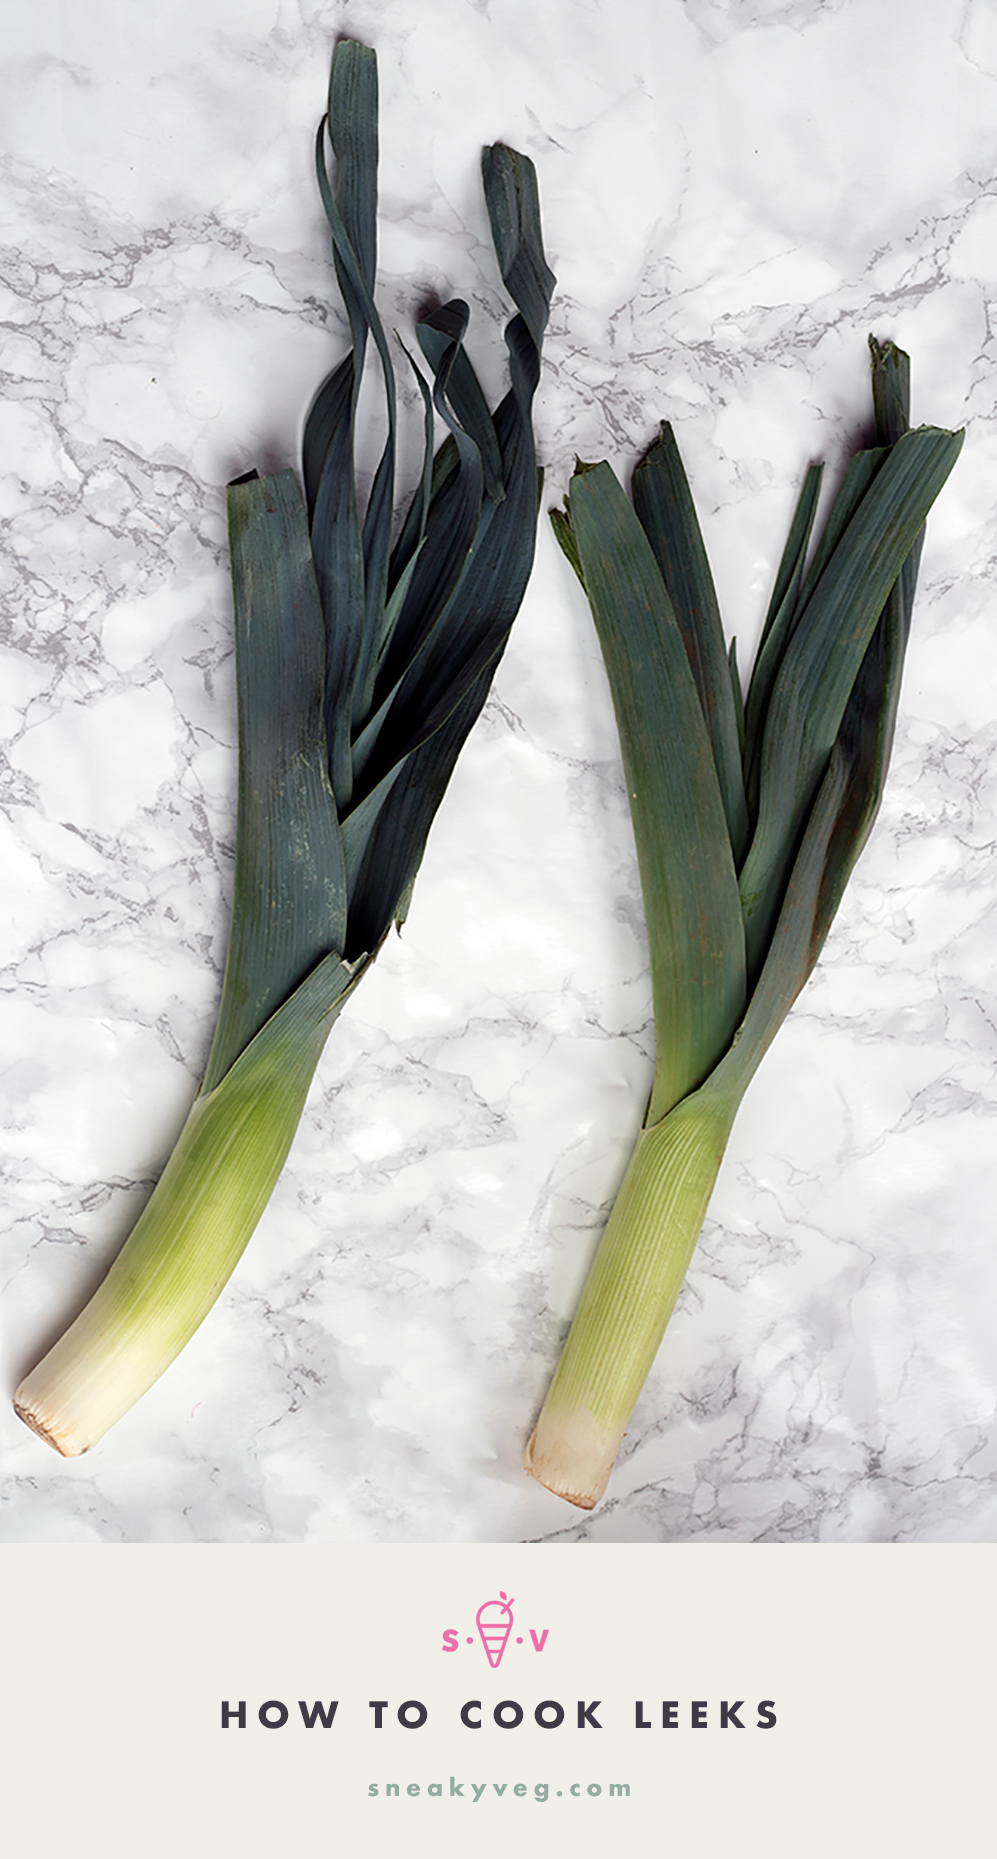 How to cook leeks with information about their history and nutritional value